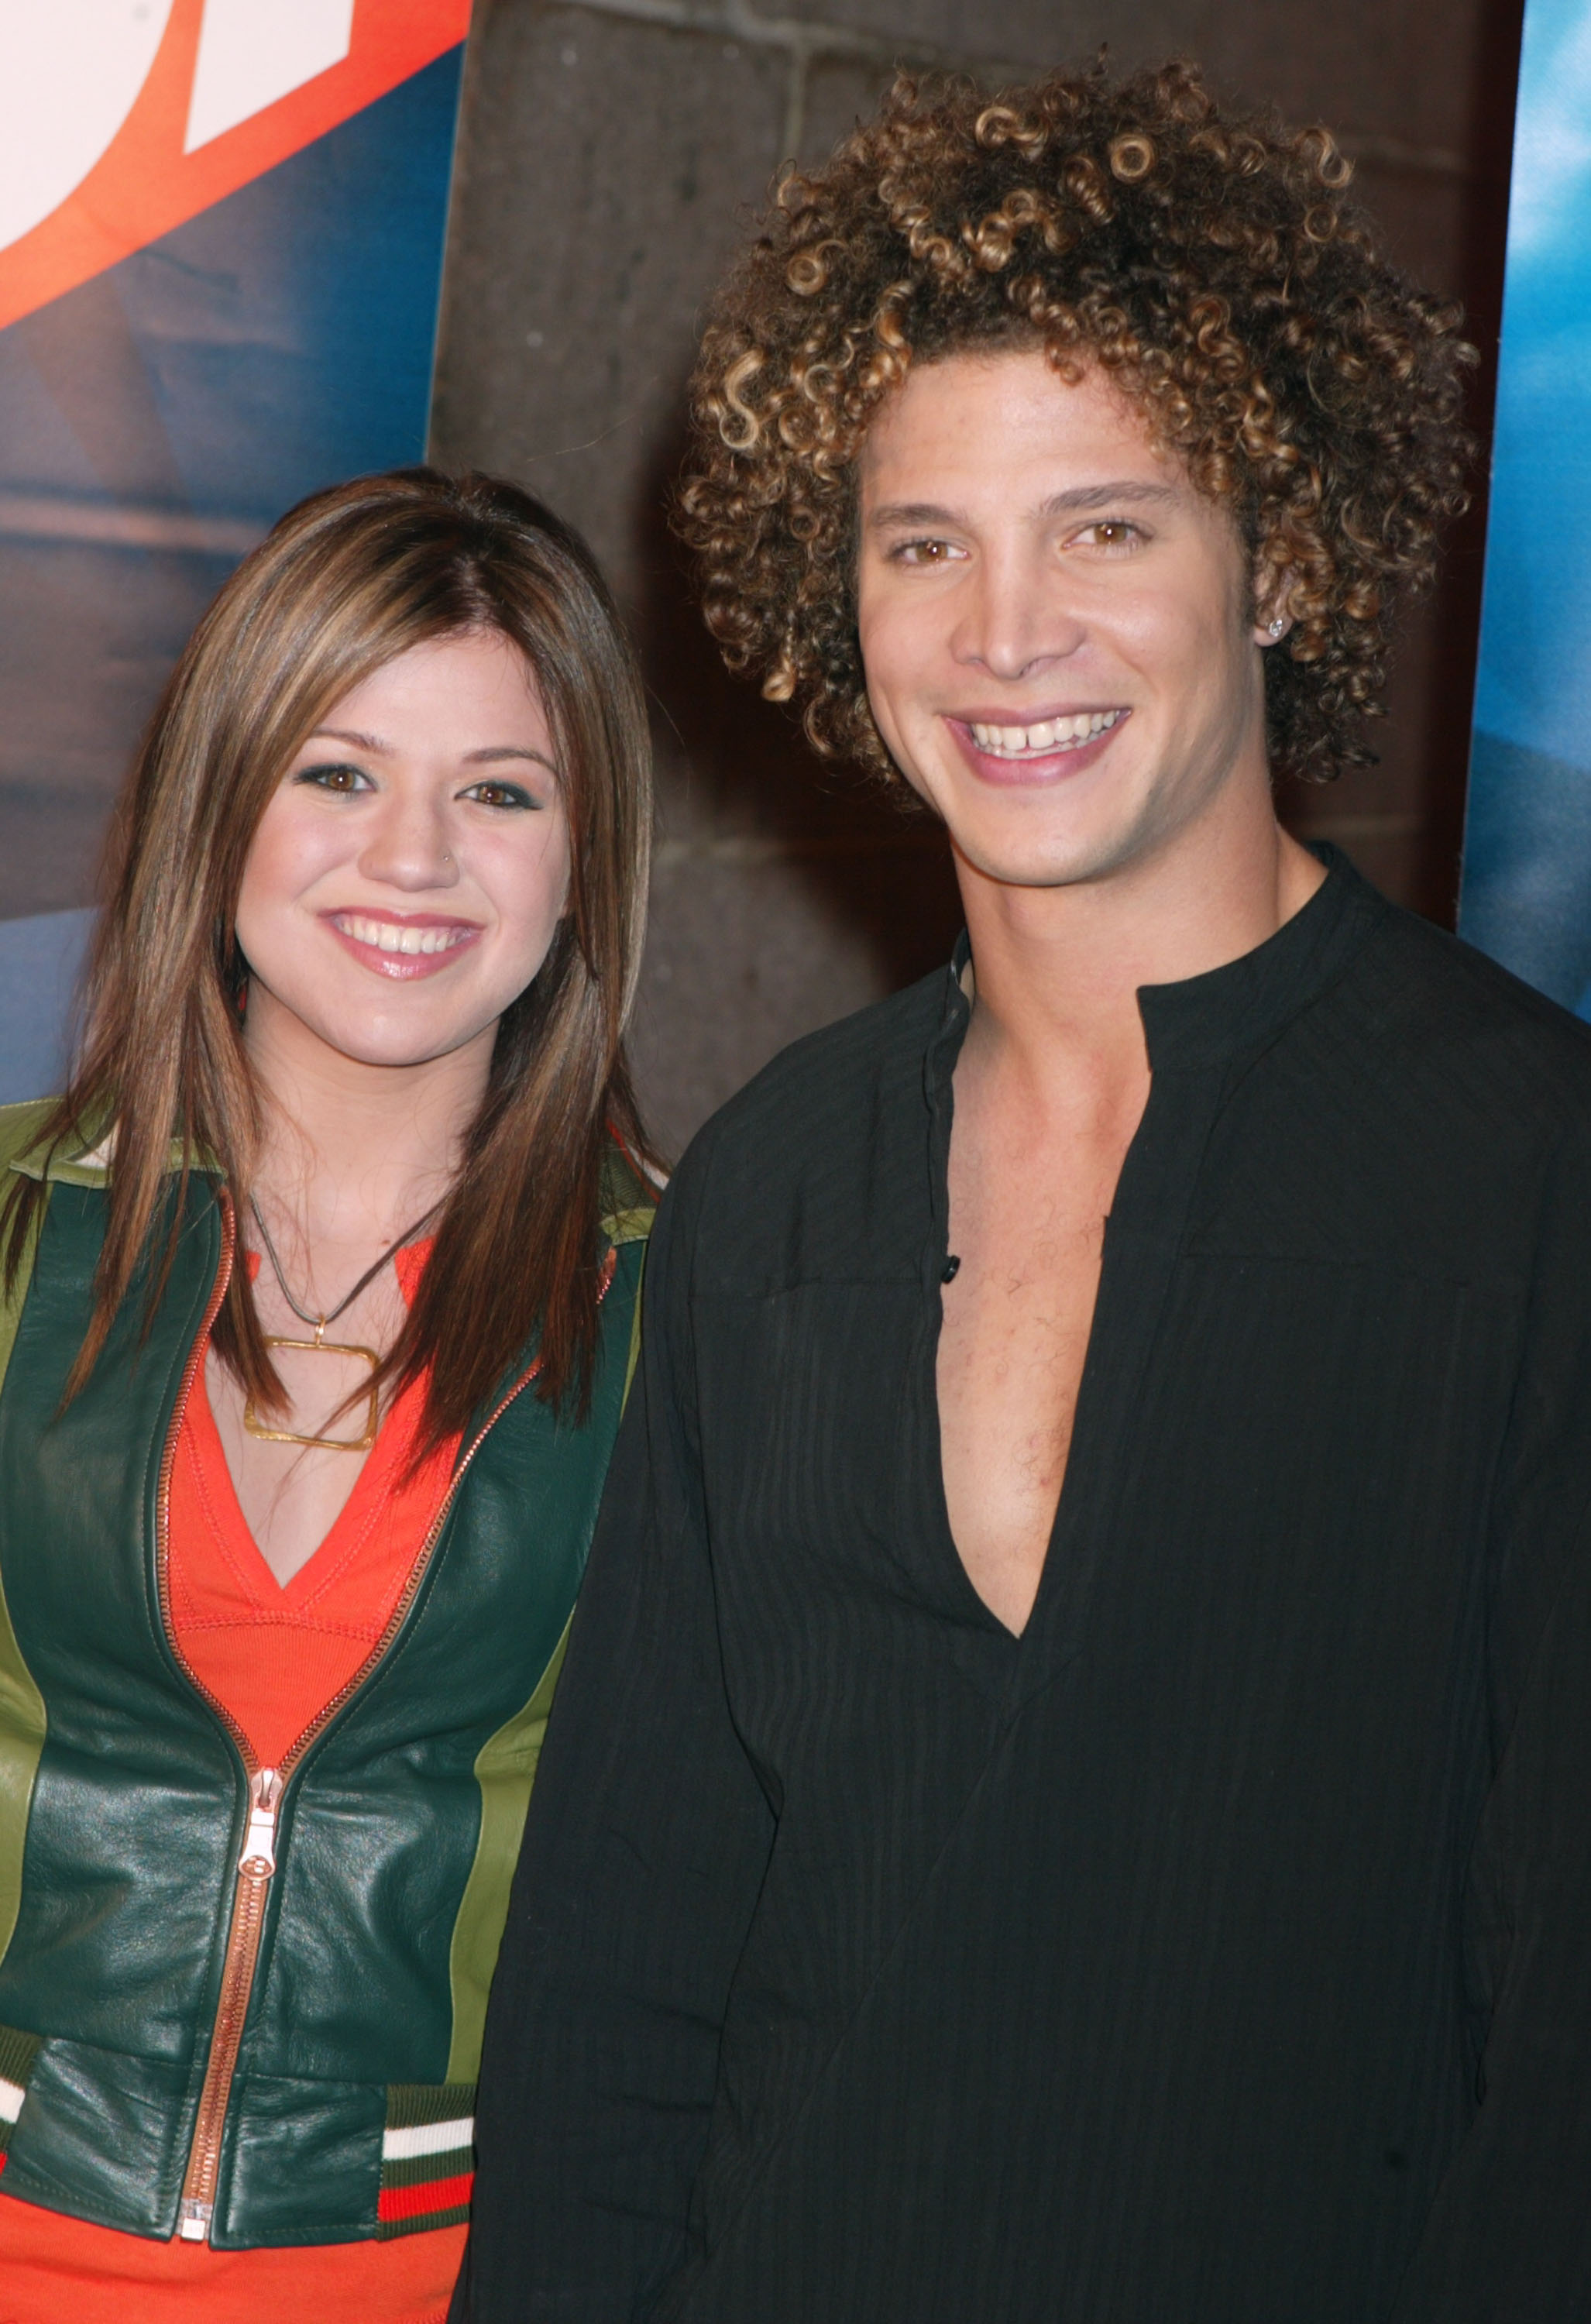 Kelly Clarkson and Justin Guarini during FOX TV Network 2003 2004 UpFront Party - Arrivals at Ciprianis at Grand Central Station in New York.